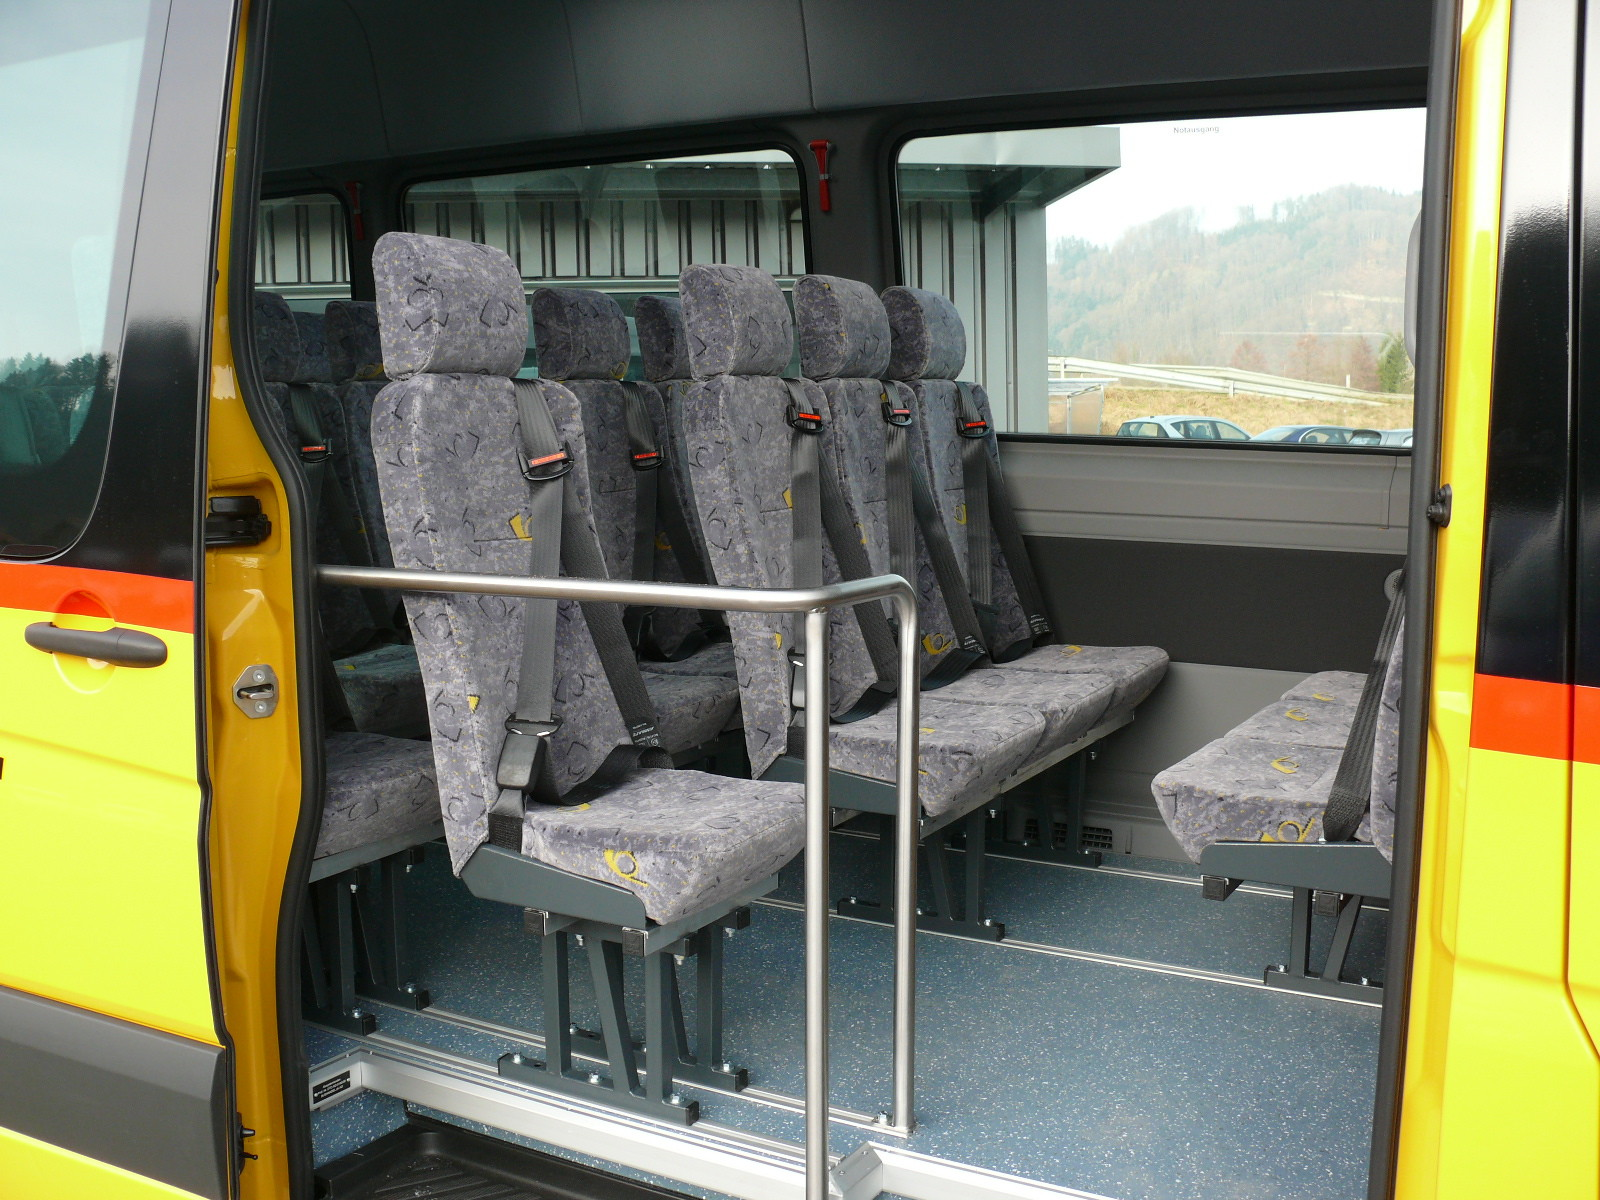 schulbus bus mieten bus kaufen bei ag kleinbusse midibusse vip busse. Black Bedroom Furniture Sets. Home Design Ideas